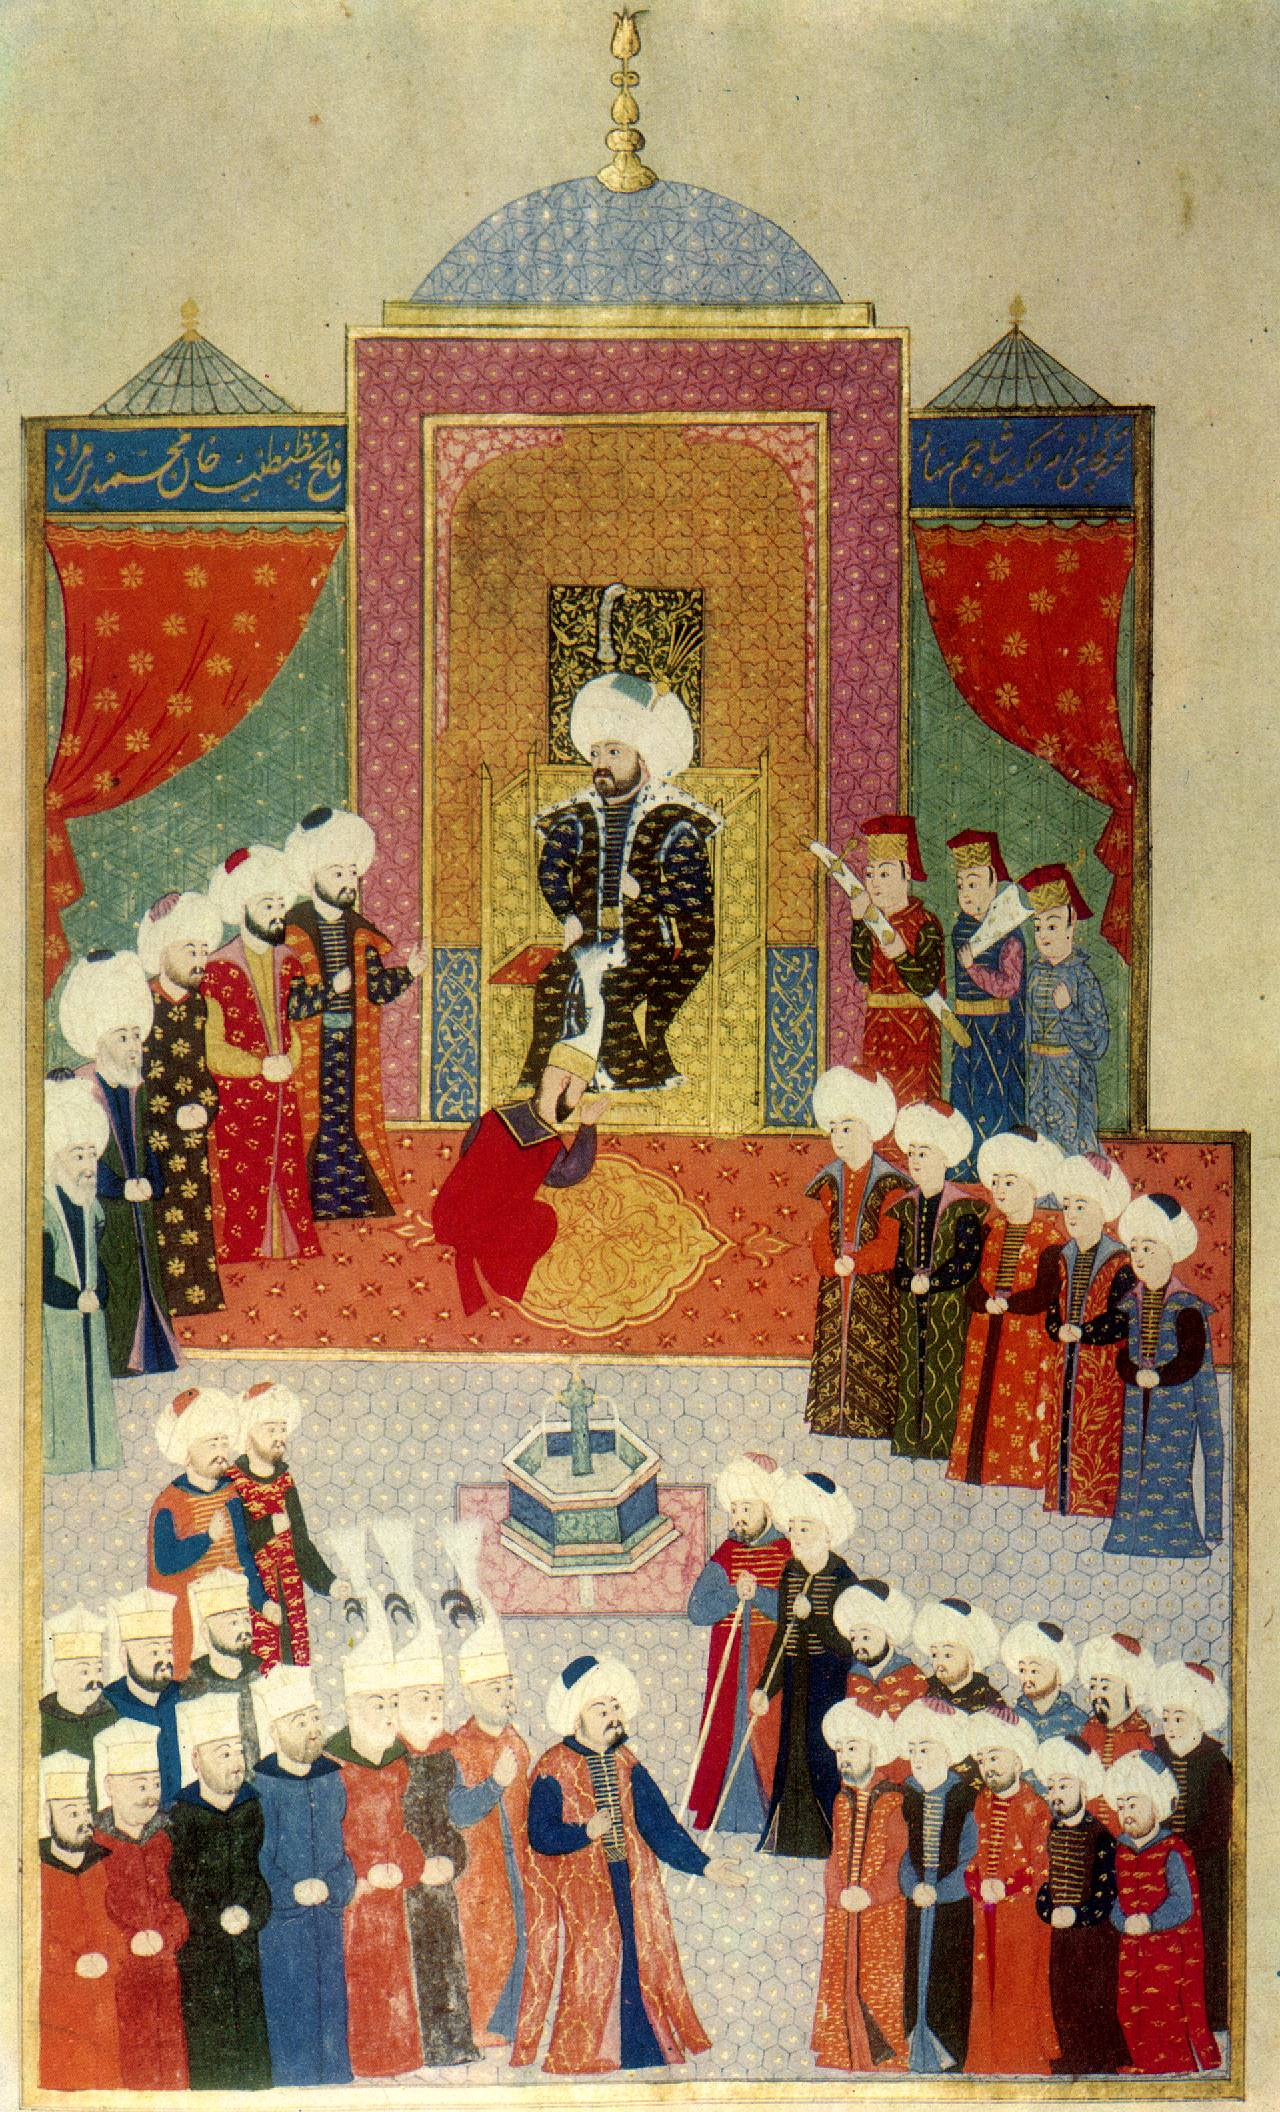 https://upload.wikimedia.org/wikipedia/commons/1/11/Hunername_accession_Mehmed_II.jpg